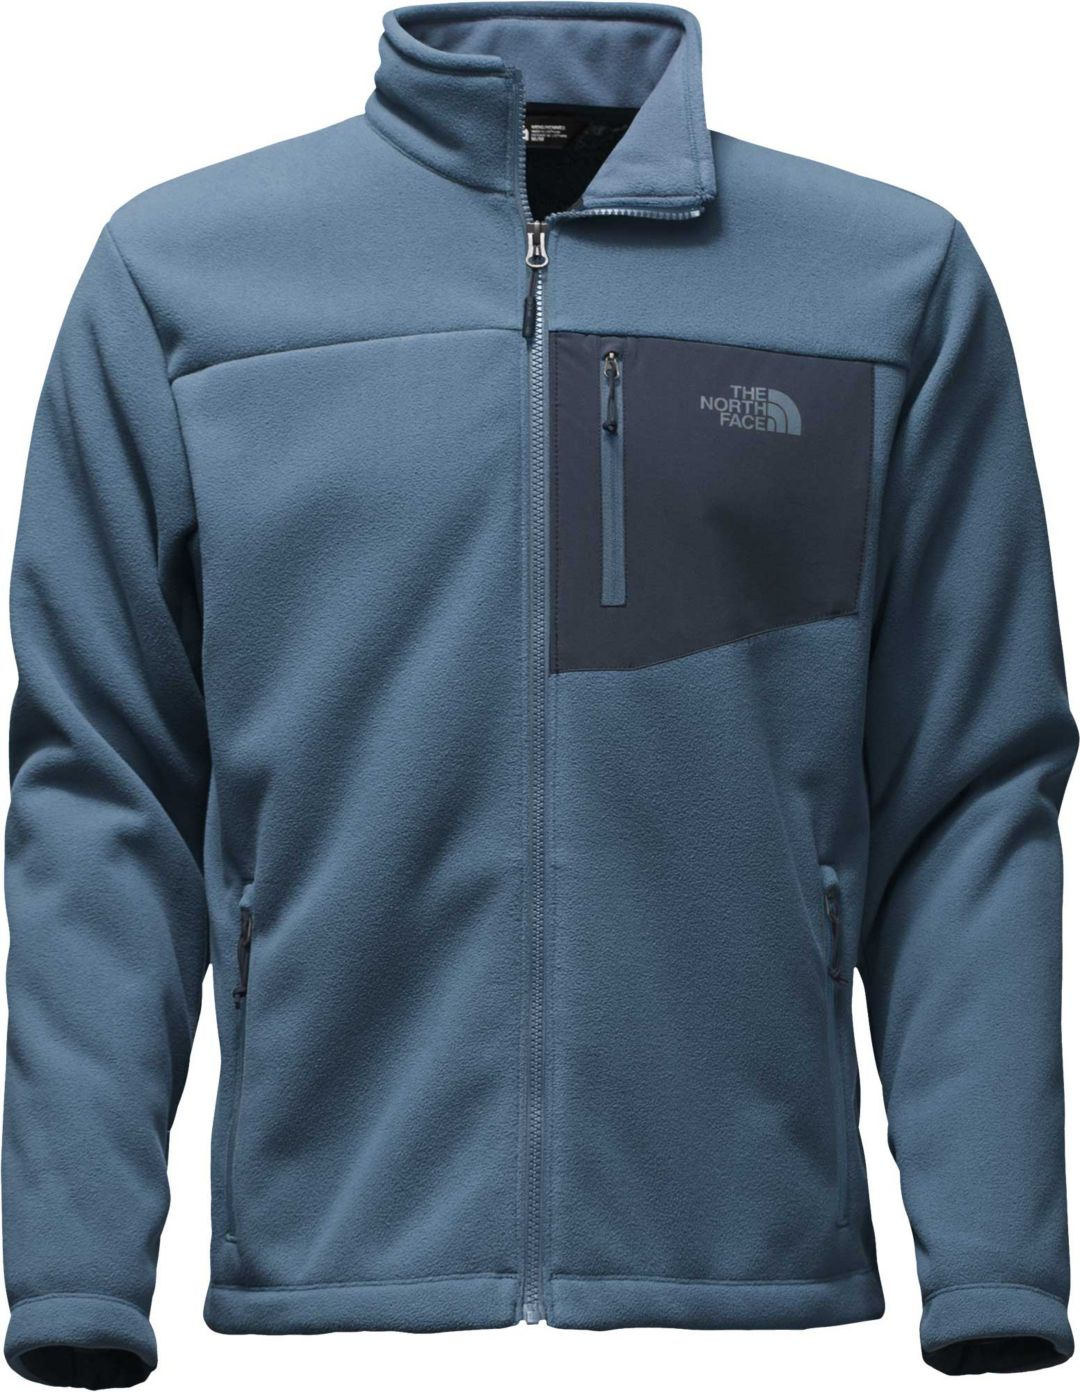 370942361 The North Face Men's Chimborazo Full Zip Fleece Jacket